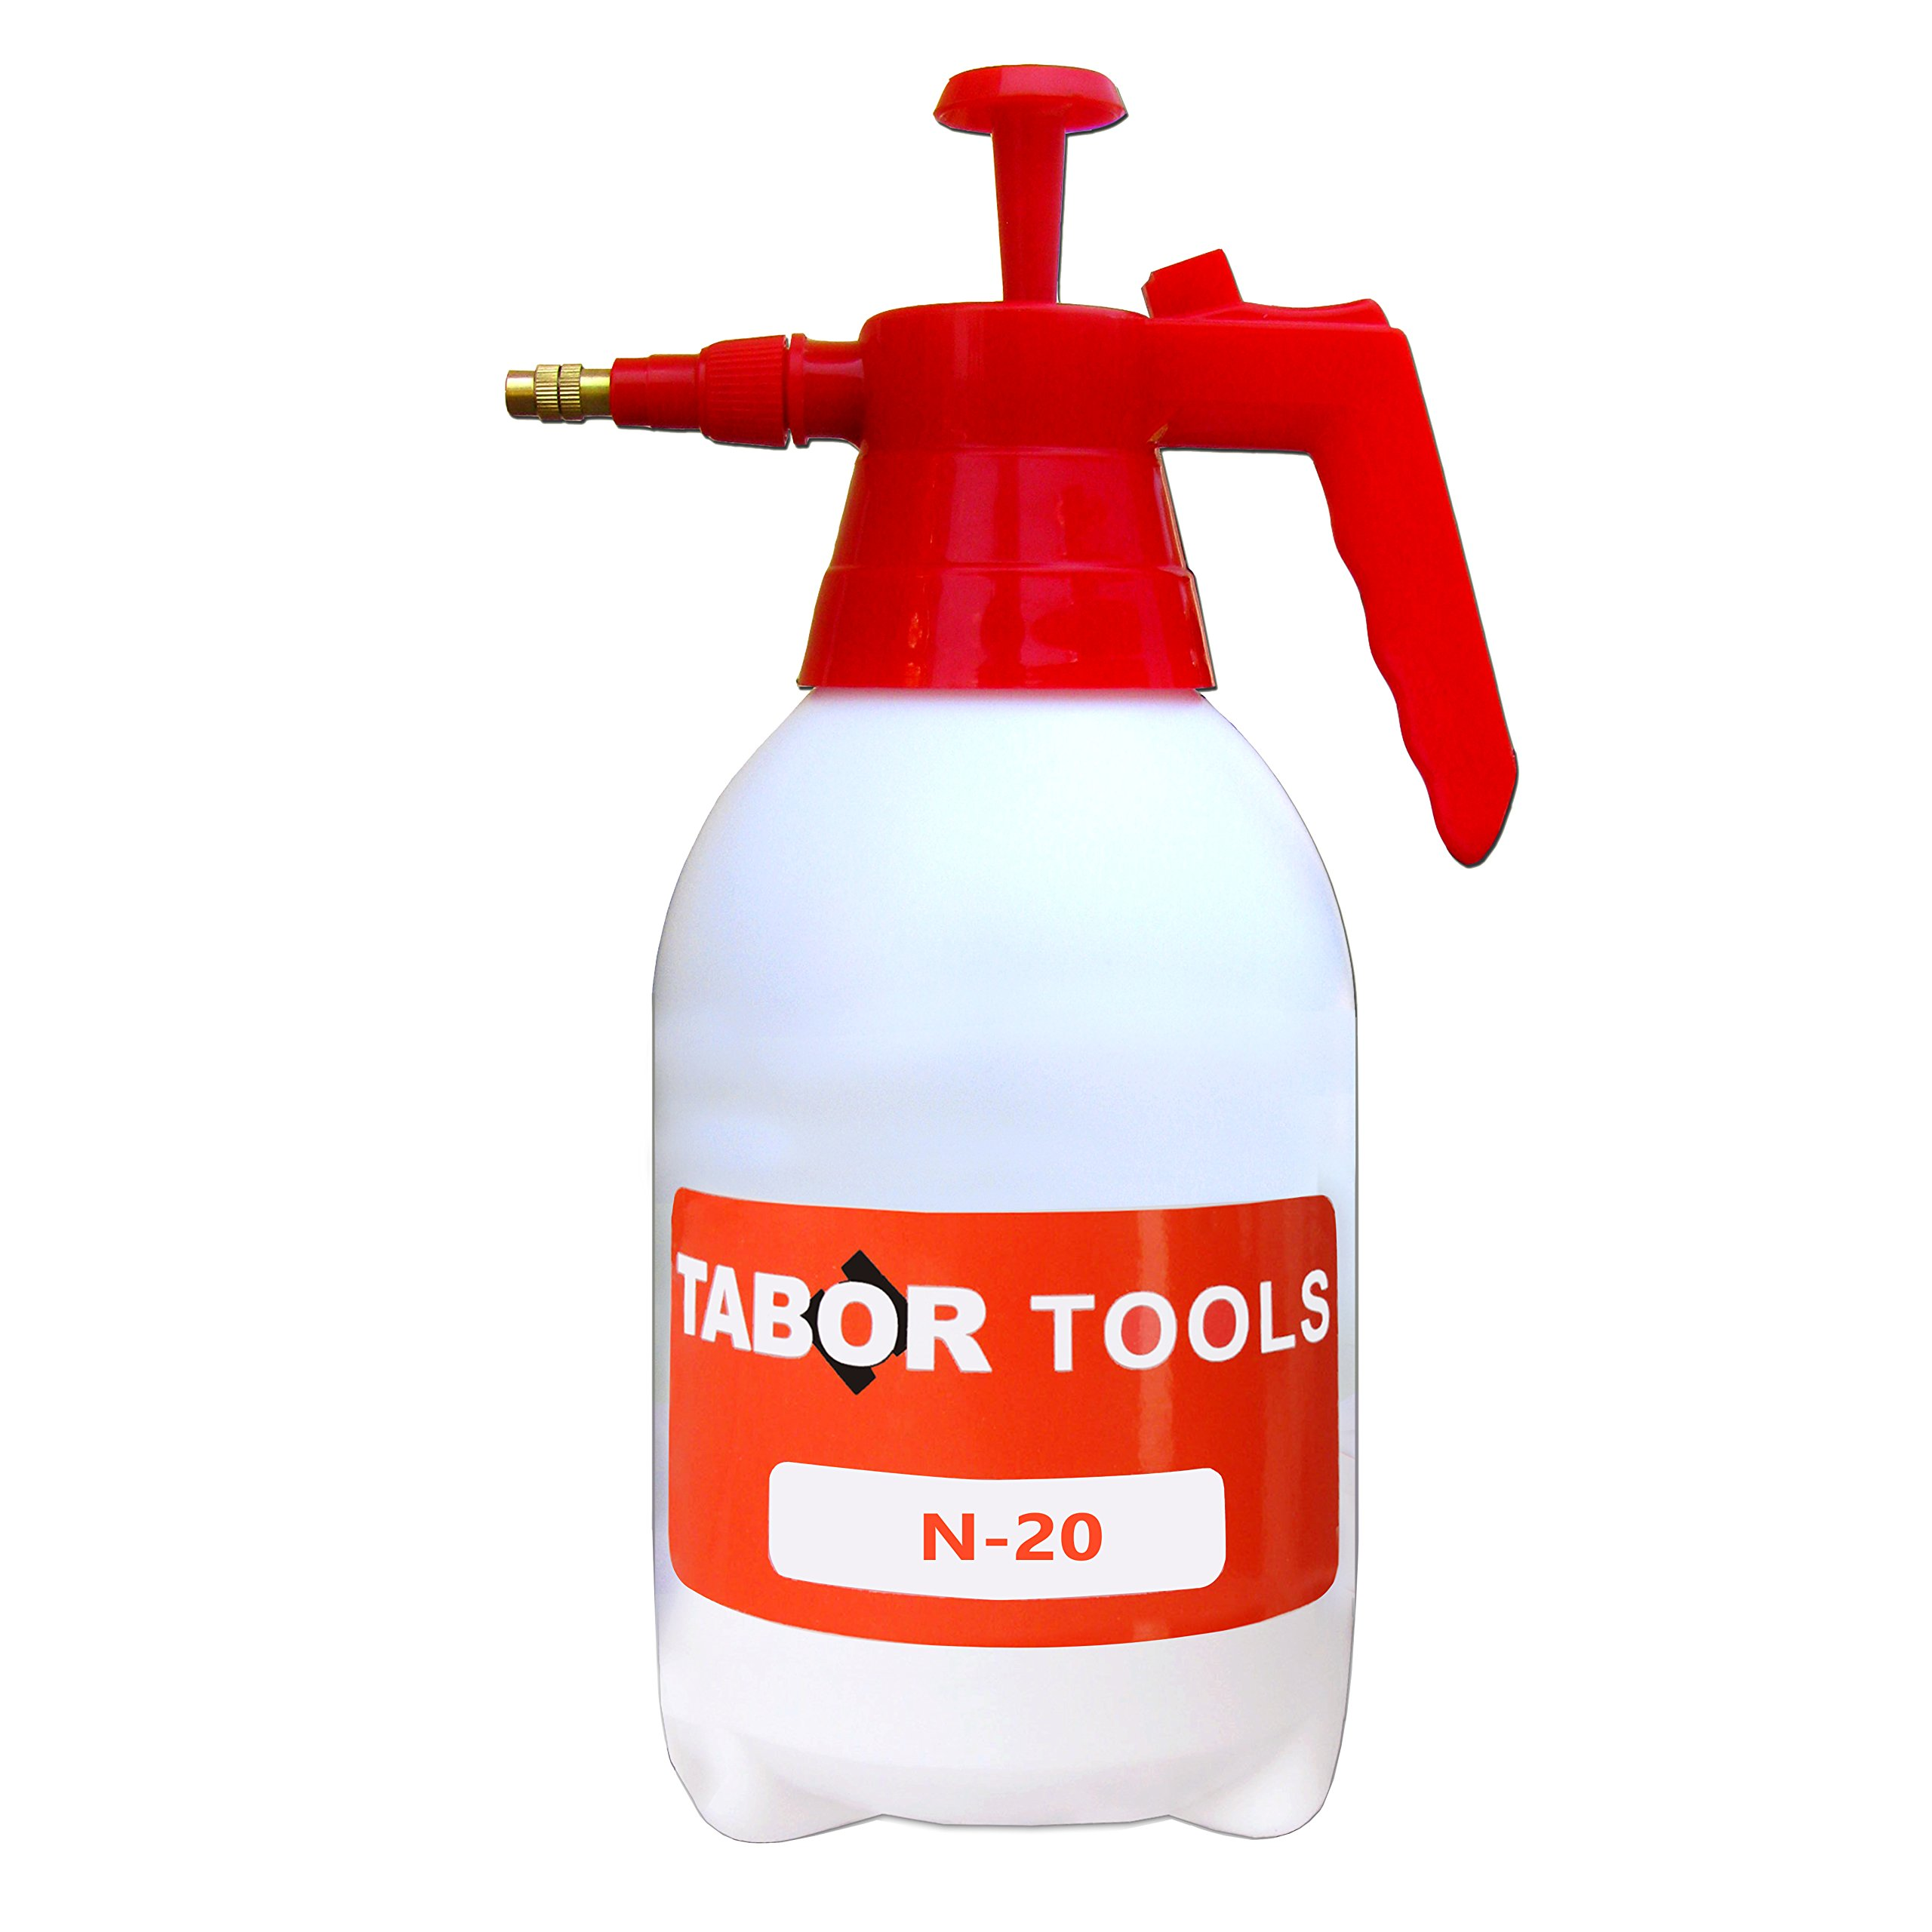 TABOR TOOLS N-20, Pump Pressure Sprayer, 0.5 Gallon Garden Sprayer & Mister for Water, Herbicides, Pesticides, Fertilizers, Mild Cleaning Solutions and Bleach by TABOR TOOLS